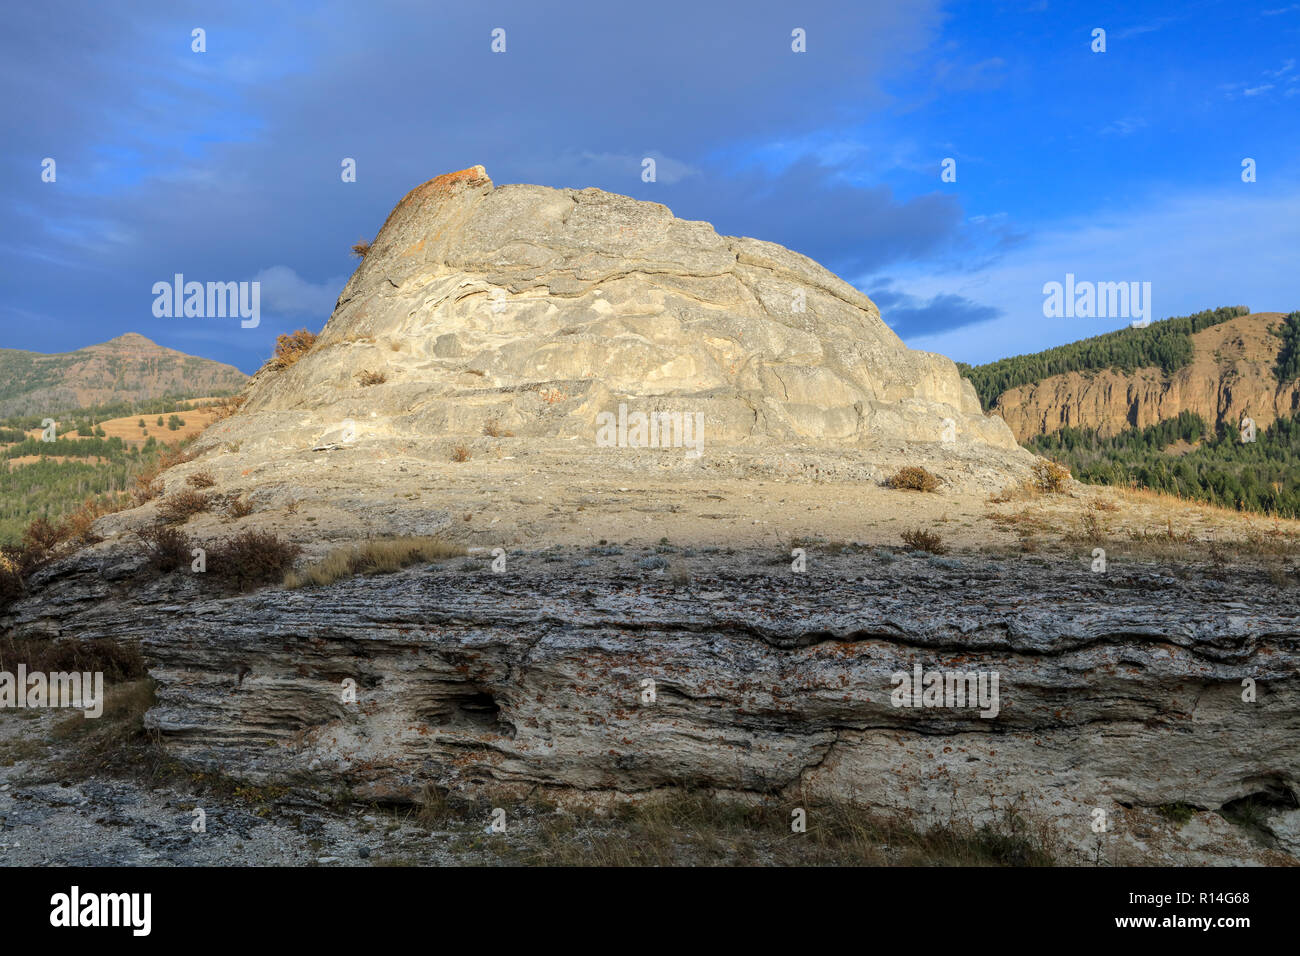 Soda Butte thermal cone in Yellowstone National Park - Stock Image